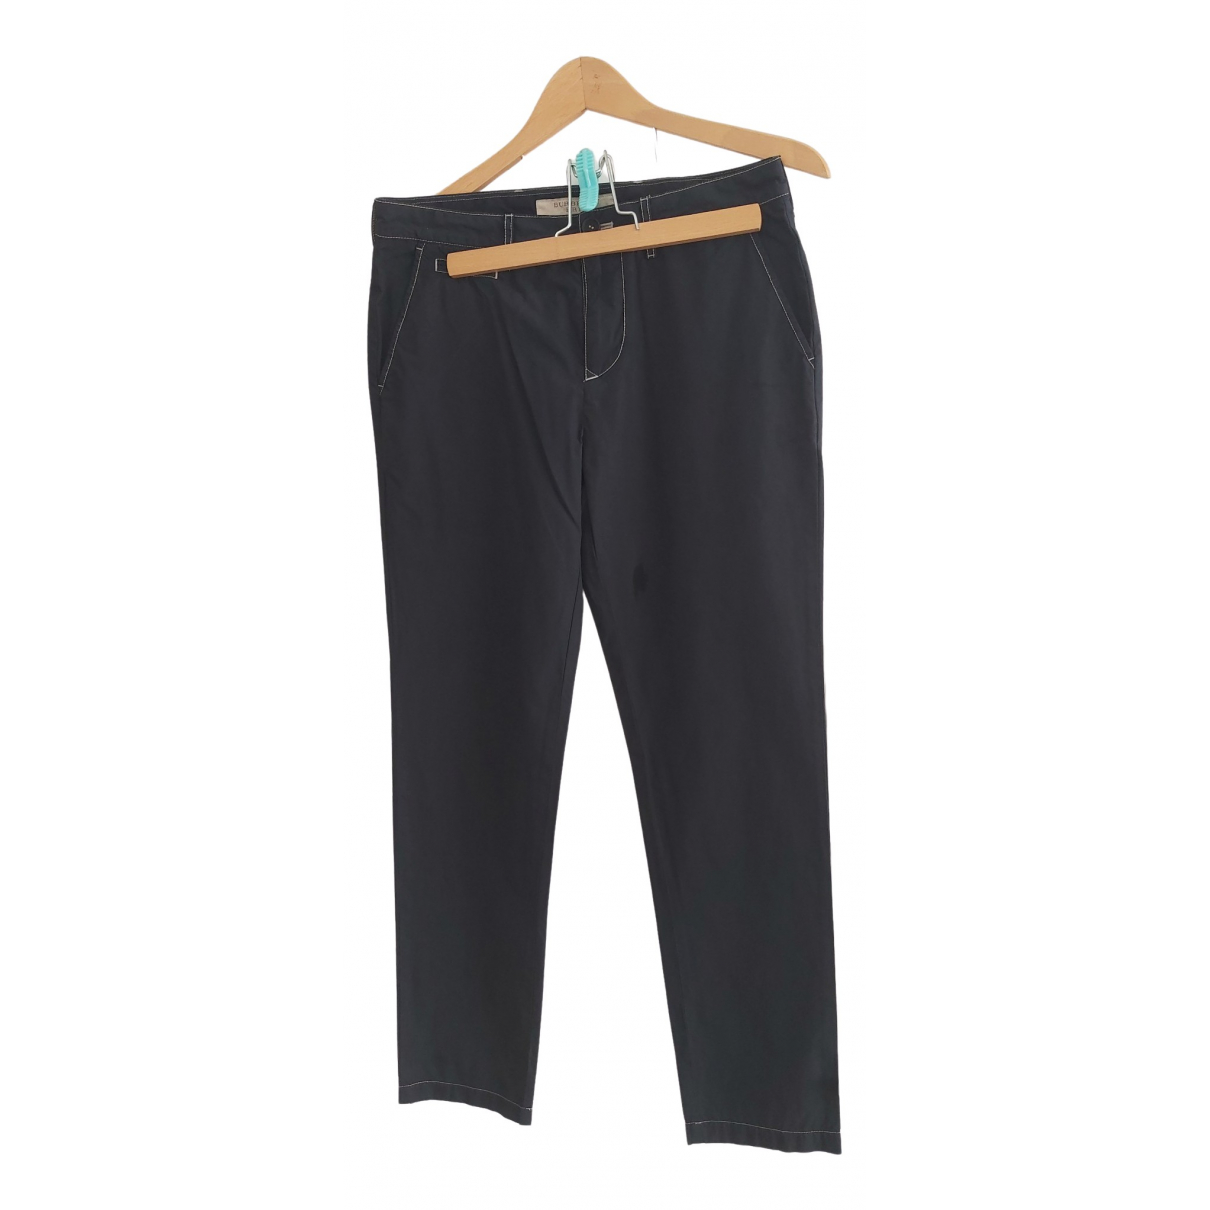 Burberry \N Black Cotton Trousers for Women 36 FR